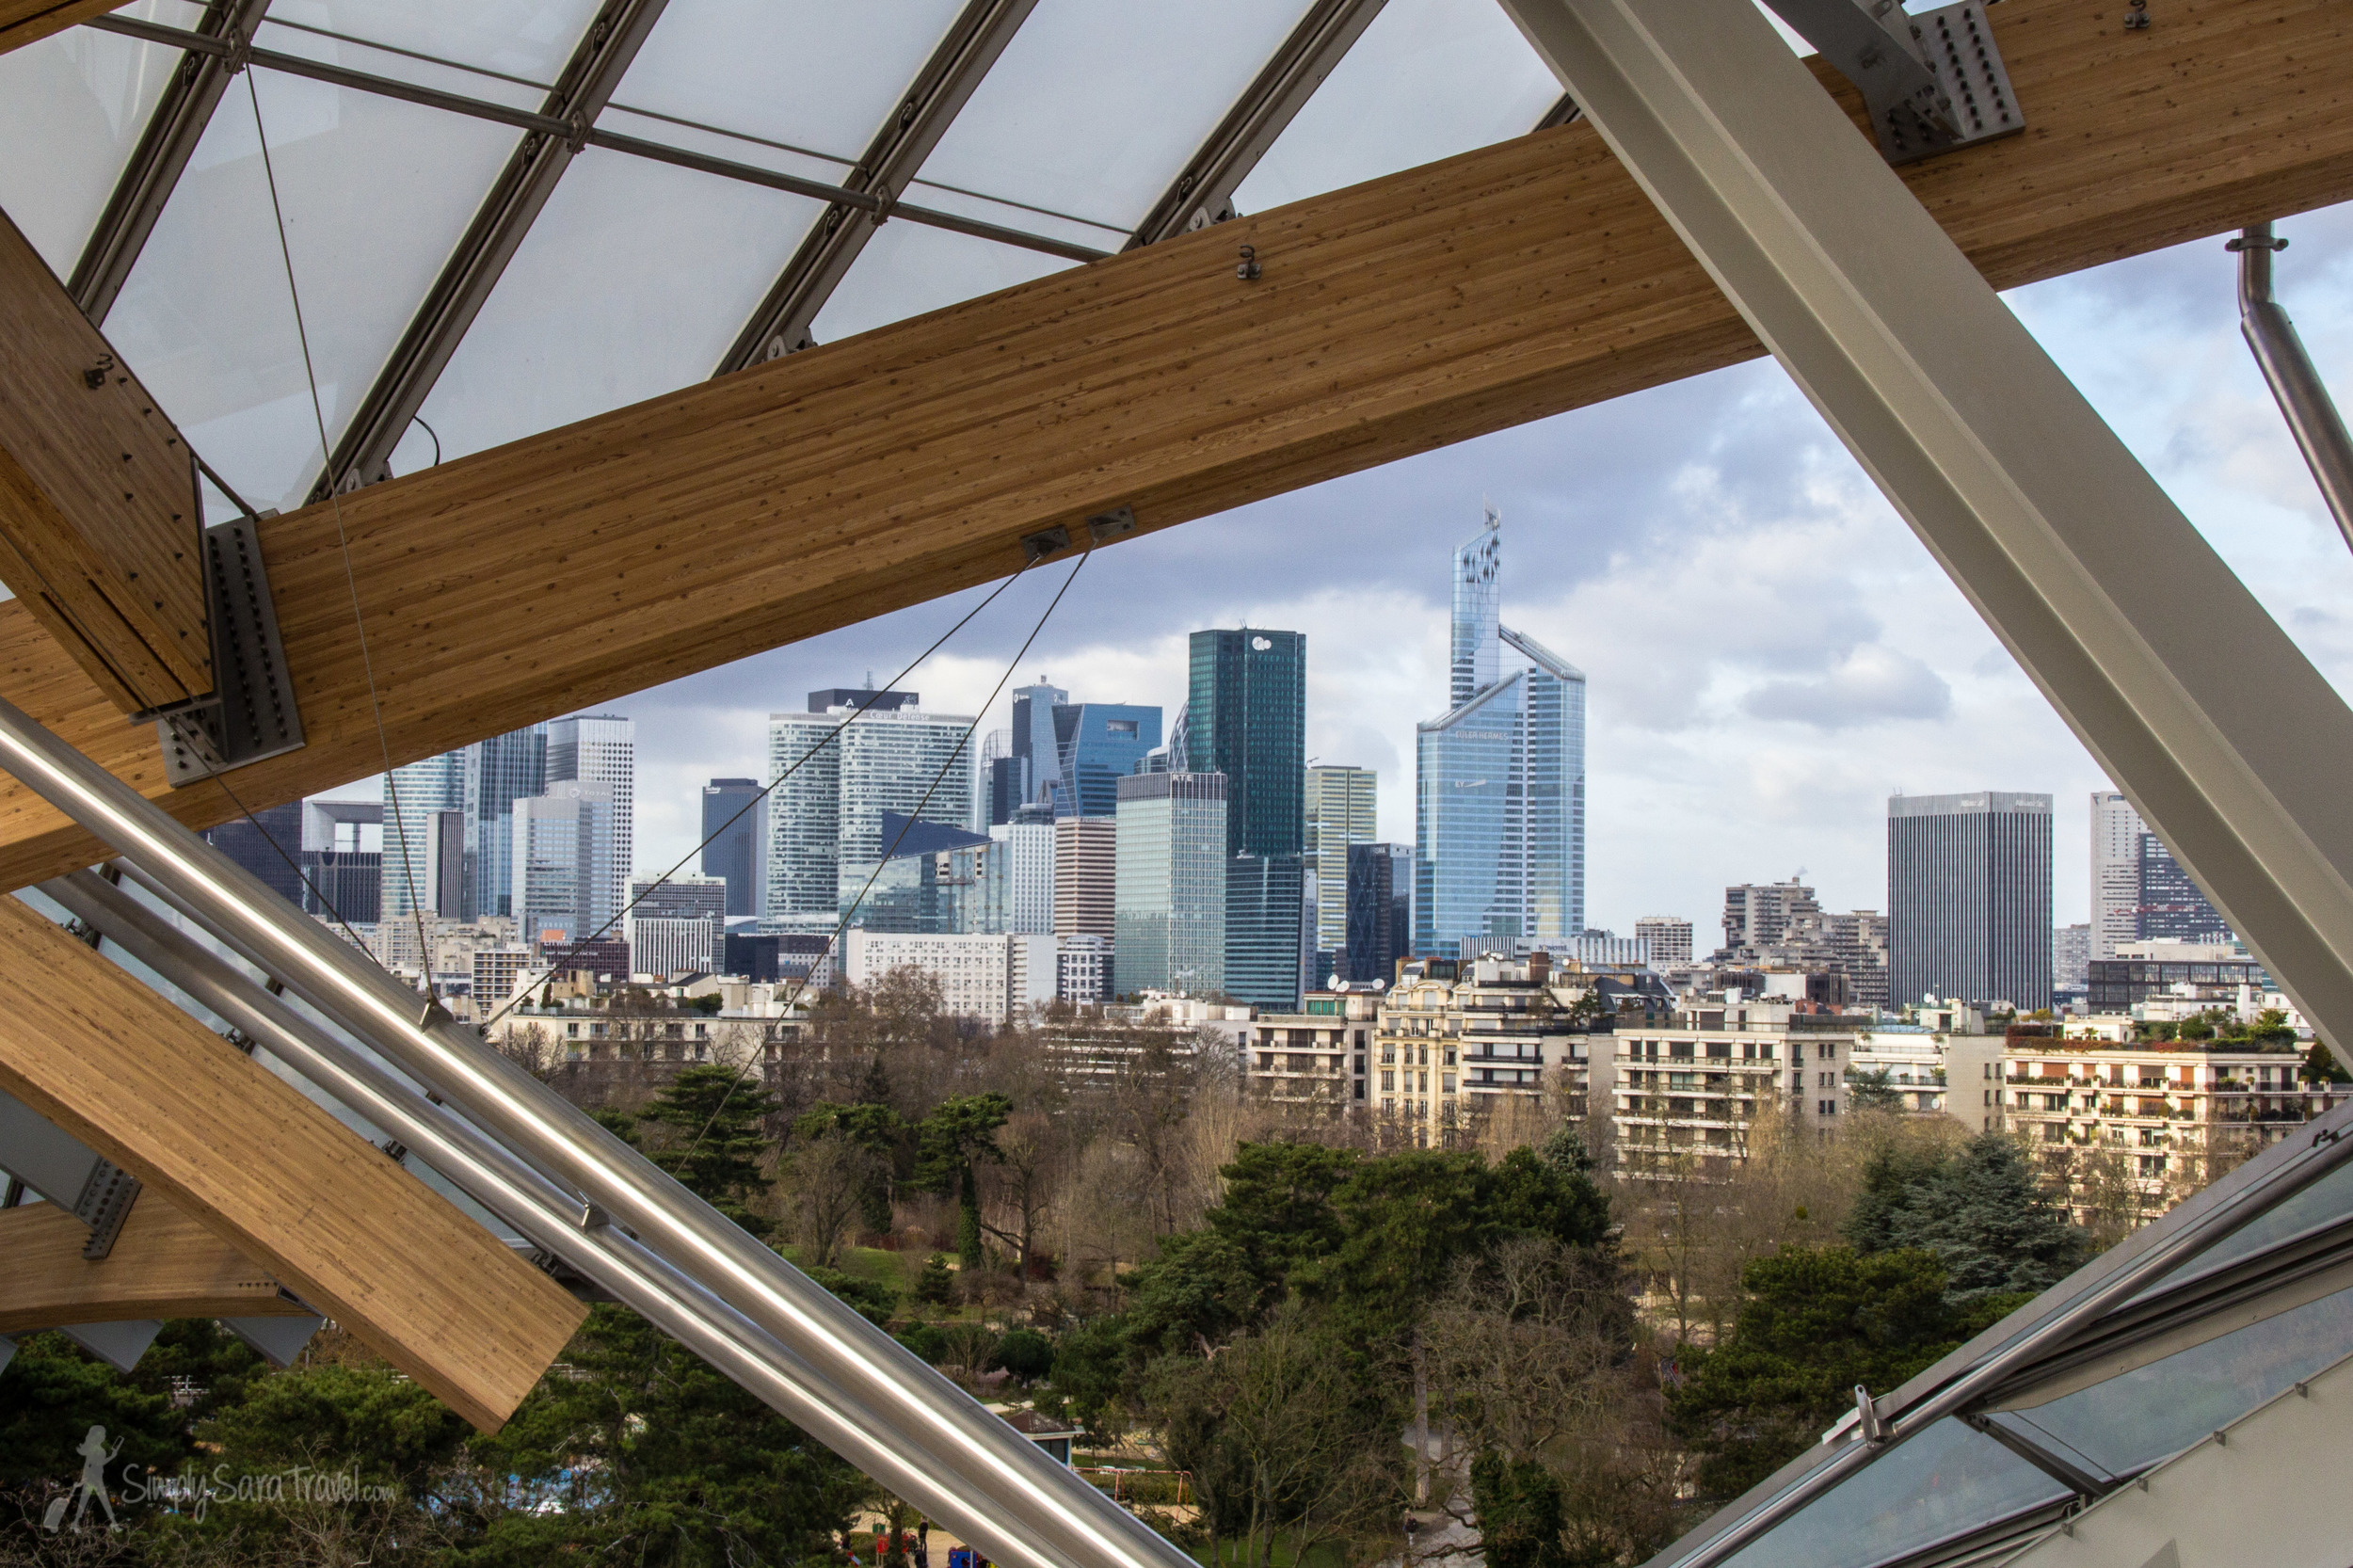 LaDéfense framed and on display from the terrace of theFondation Louis Vuitton